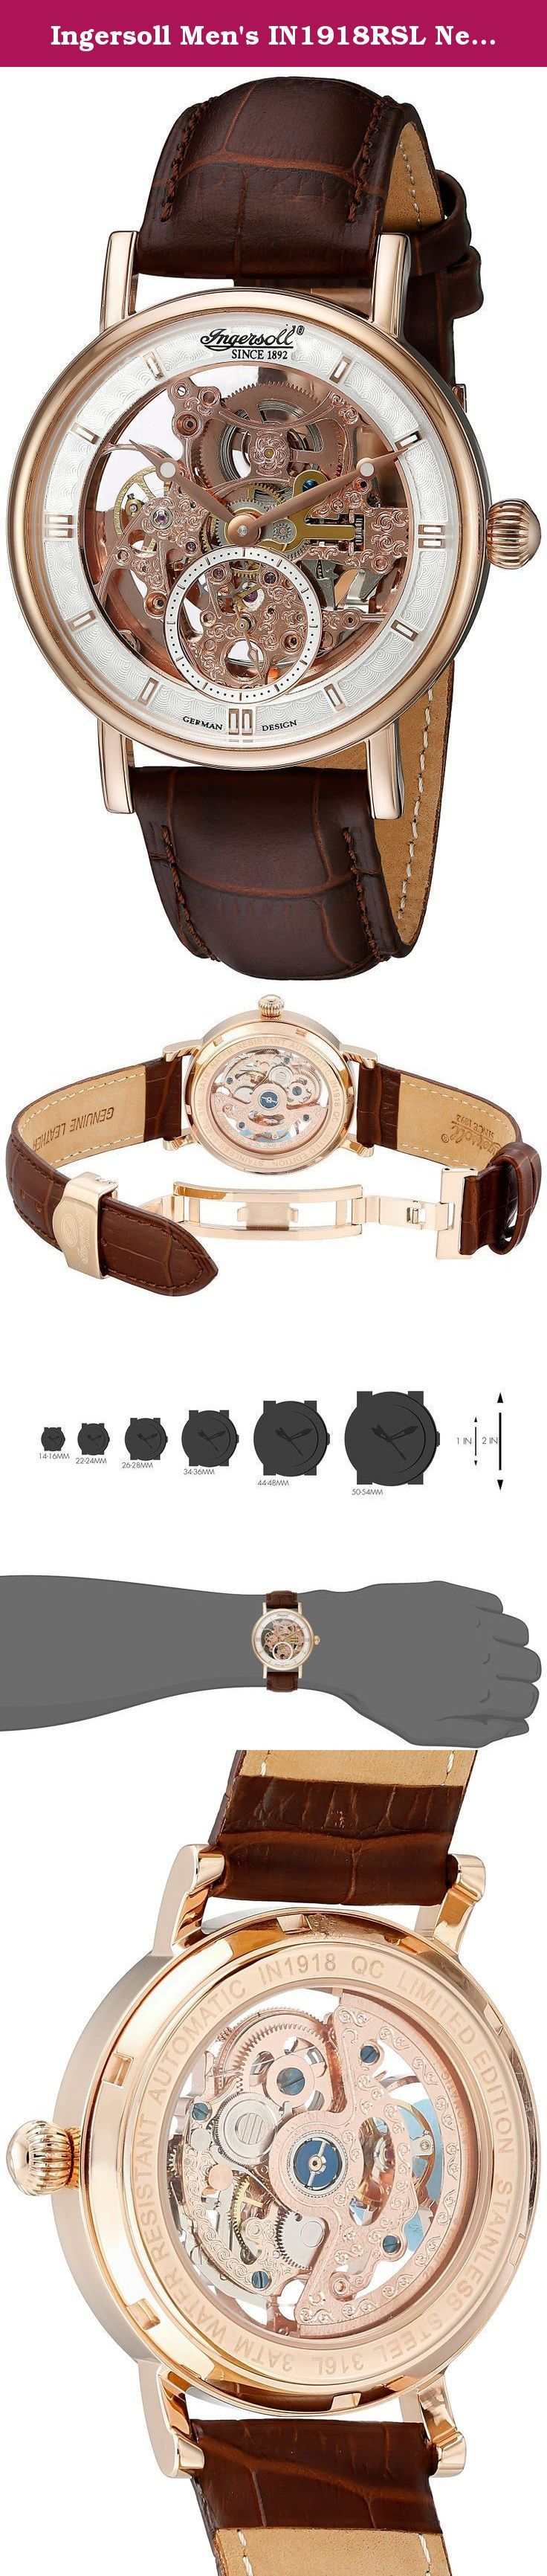 Ingersoll Men's IN1918RSL Nez Perce Analog Display Automatic Self Wind Brown Watch. Movement: Automatic, Calibre: 414, Case Material: stainless steel, Watch glass: Mineral, Case color: red gold, Case diameter: 40mm, Dial color: silver, Stones/ jewels: 20, Case back: mineral glass, Functions: skeleton, small second, material: leather, Bracelet color: brown, Impetus : 20 mm, Clasp: folding clasp Clasp color: red gold, ATM: 3. The size of the IN1918RSL Nez Percé is 40 mm. The housing of the...